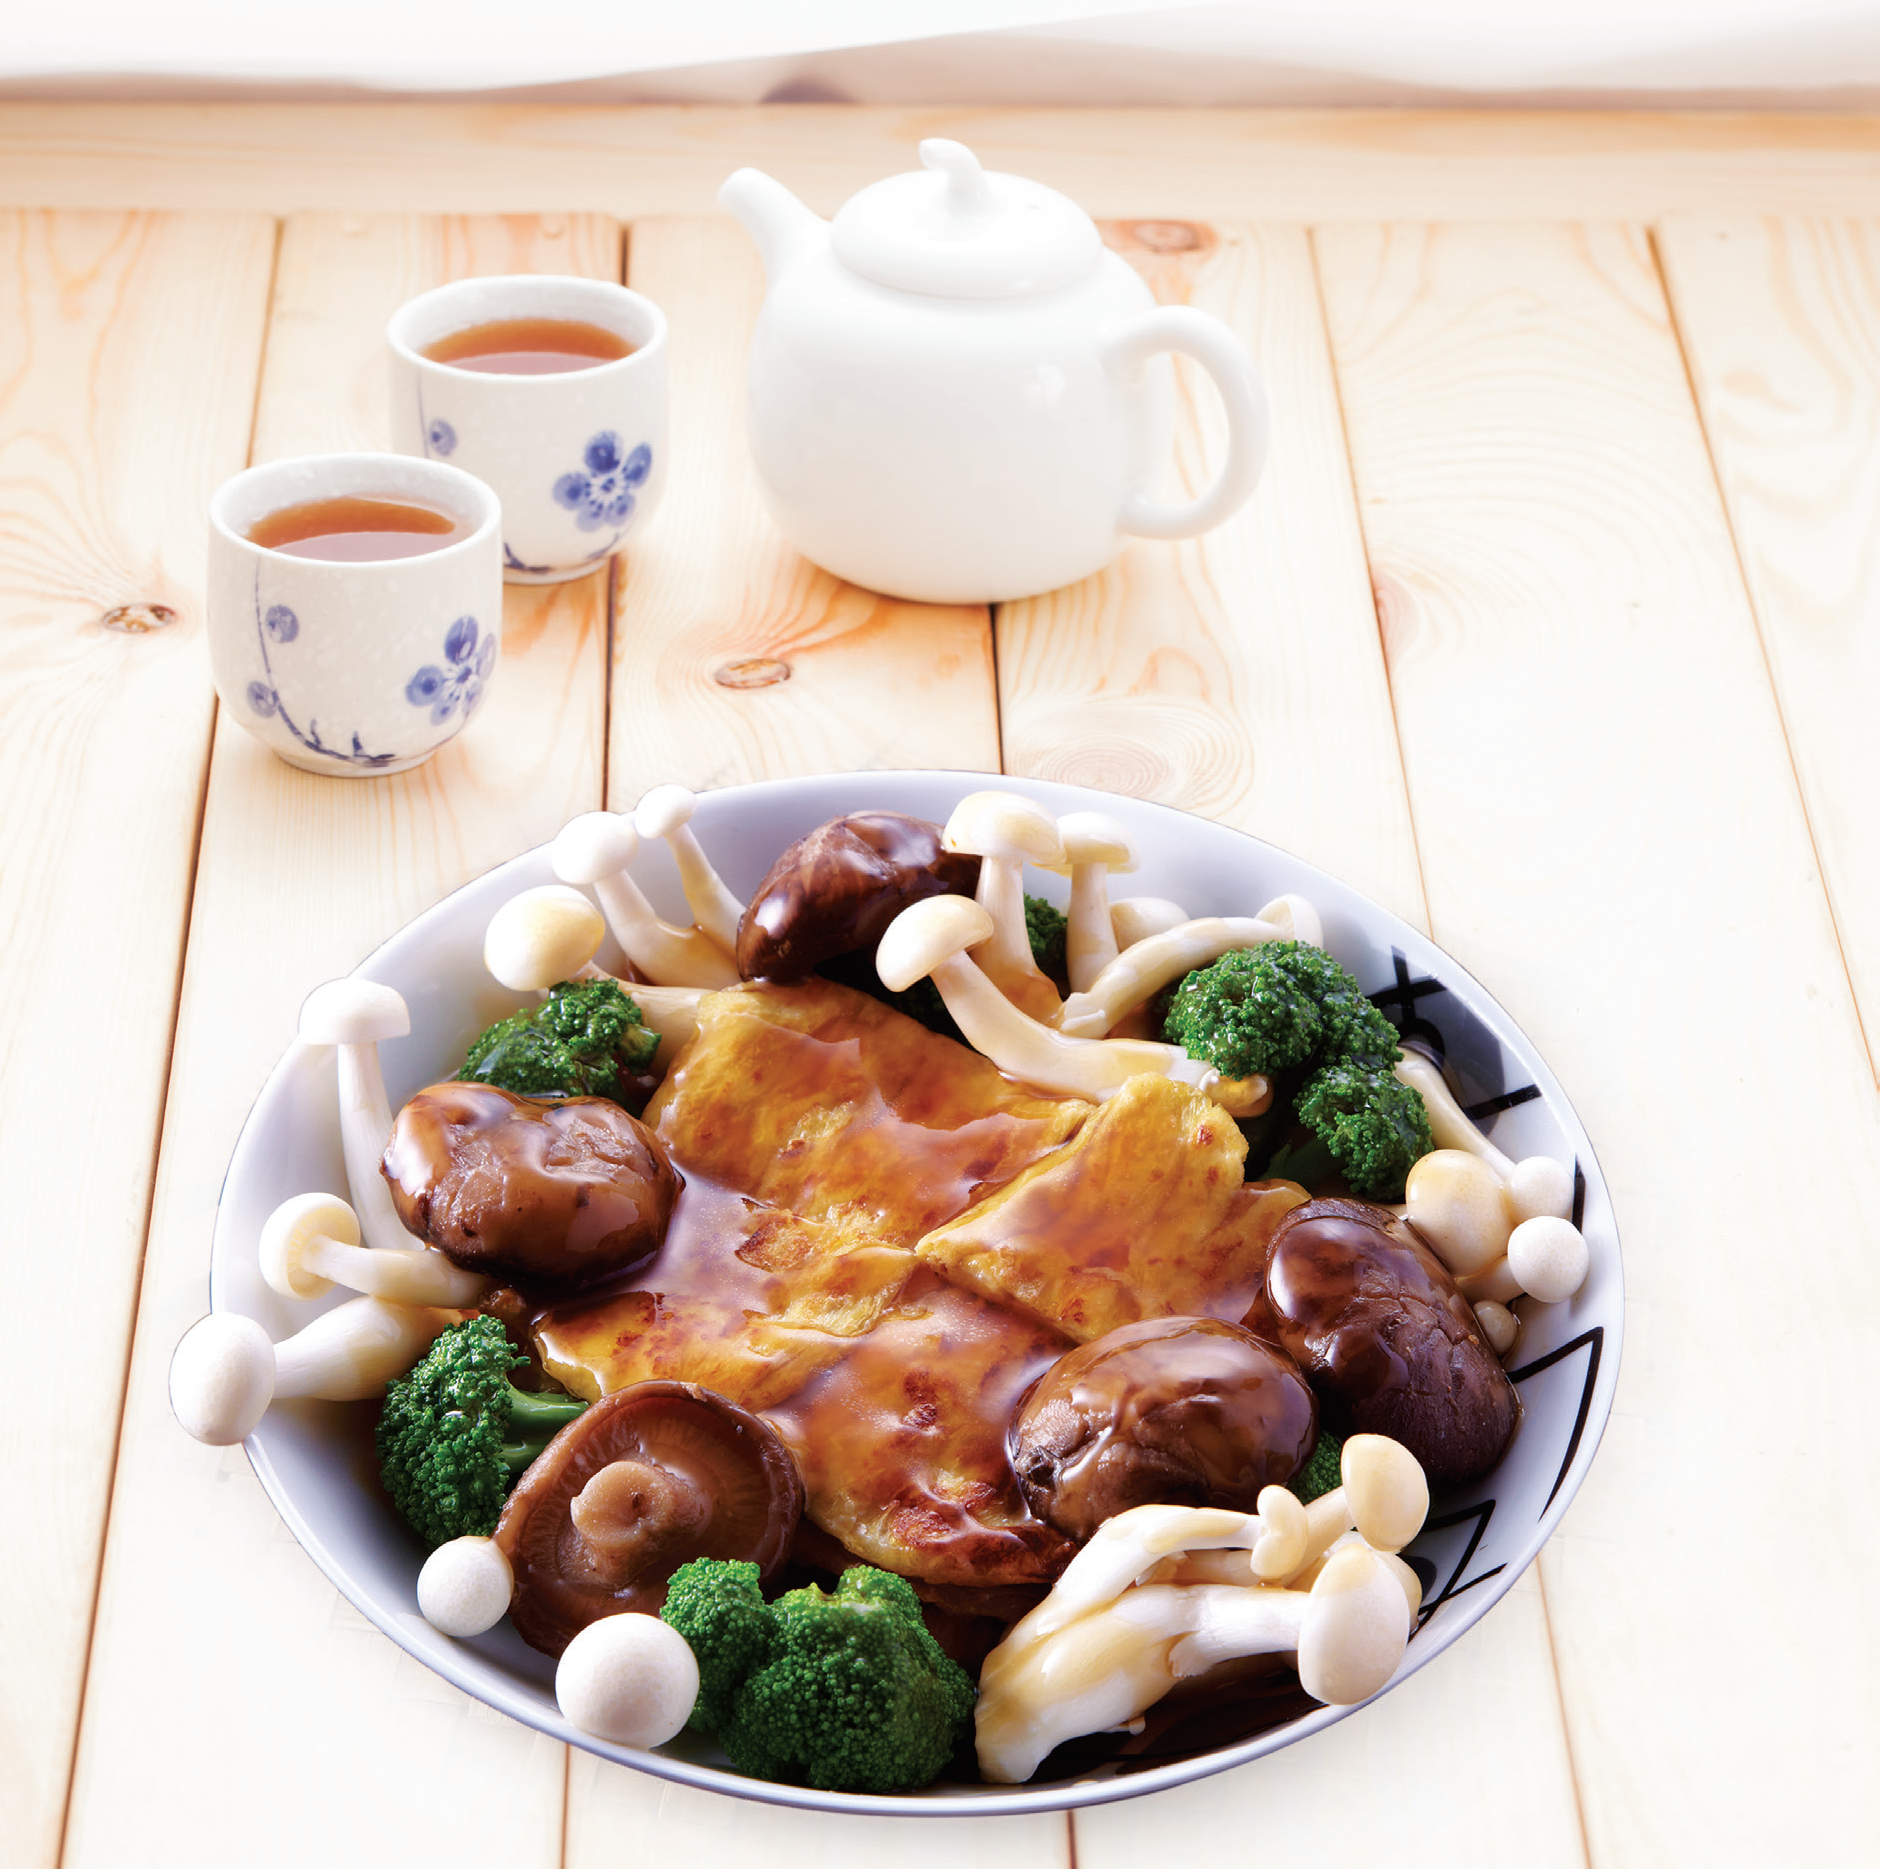 Mushroom vegetables with fried bean curd by Angel Brands